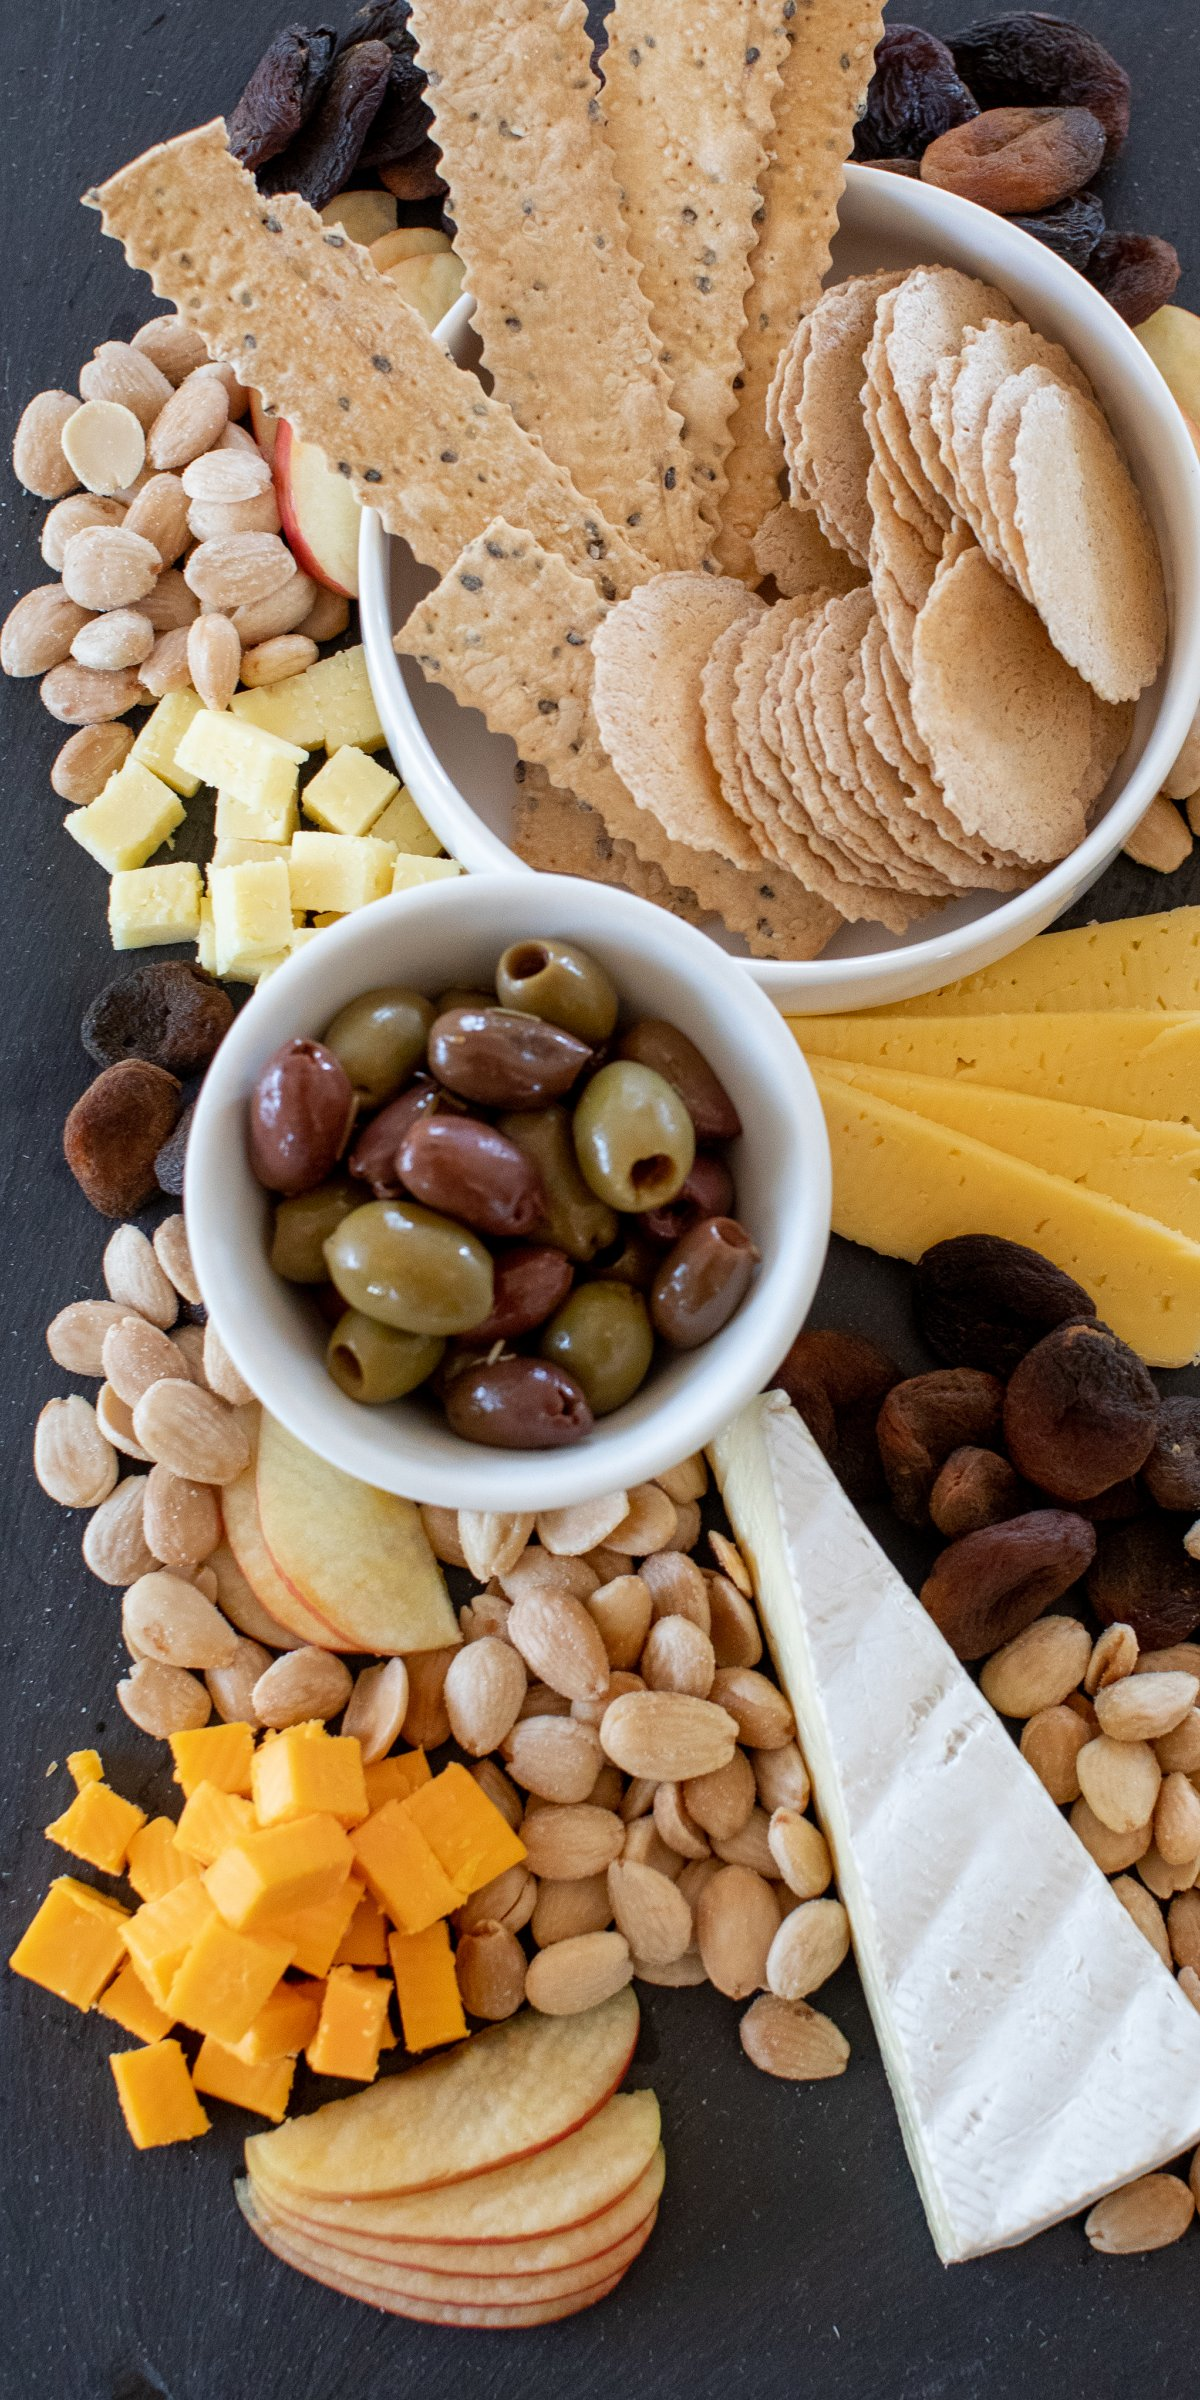 Platter of Nuts, Olives, Cheese and Bread